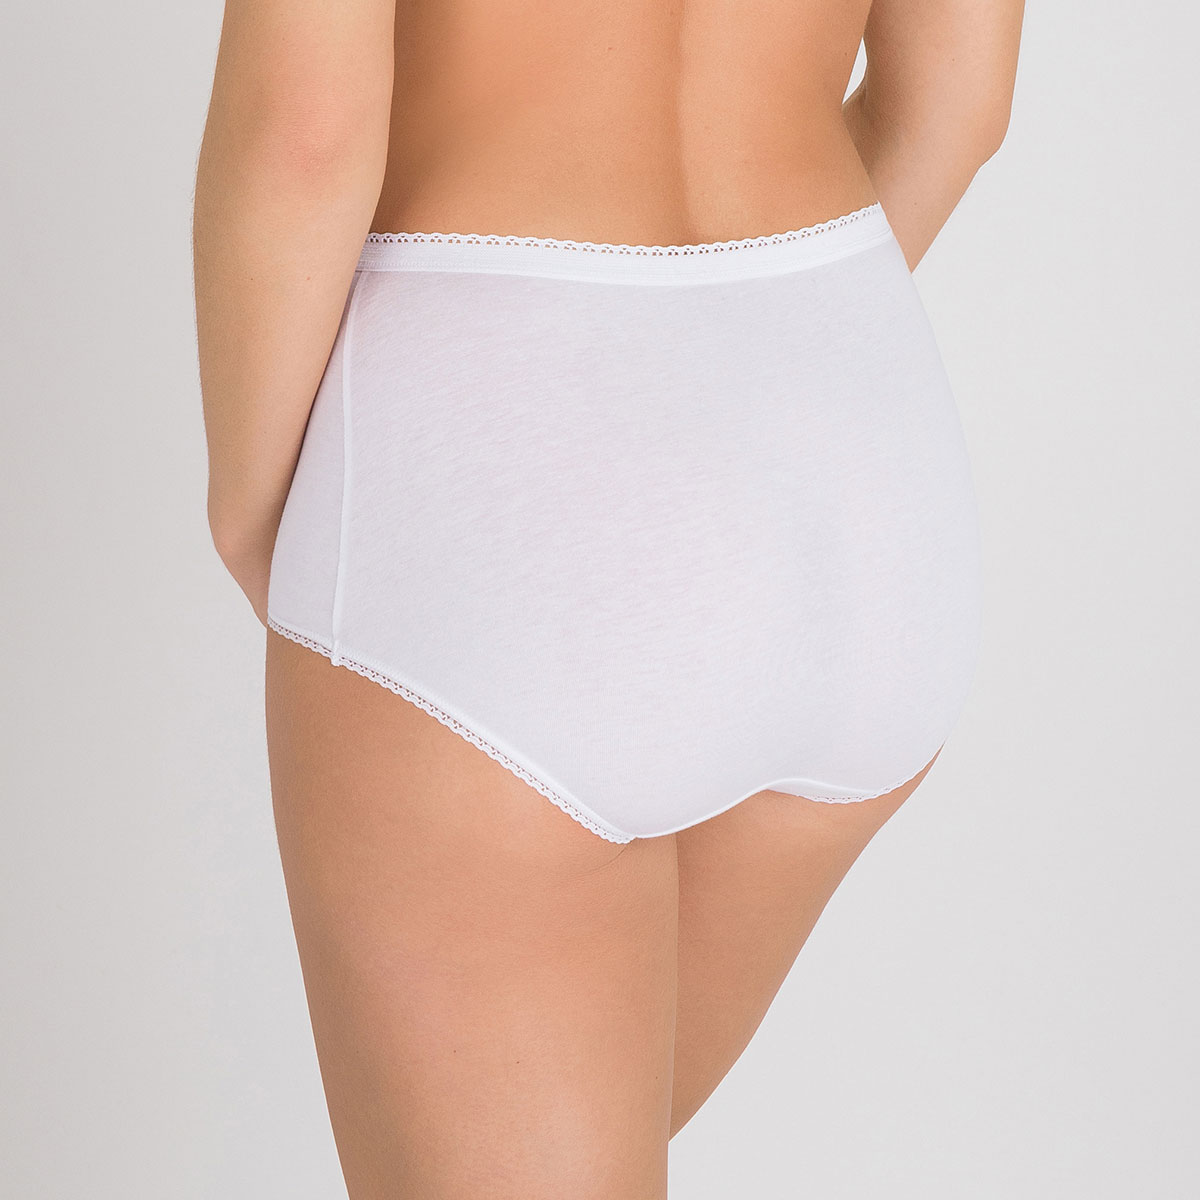 2 Maxi Briefs in White – Stretch Cotton-PLAYTEX